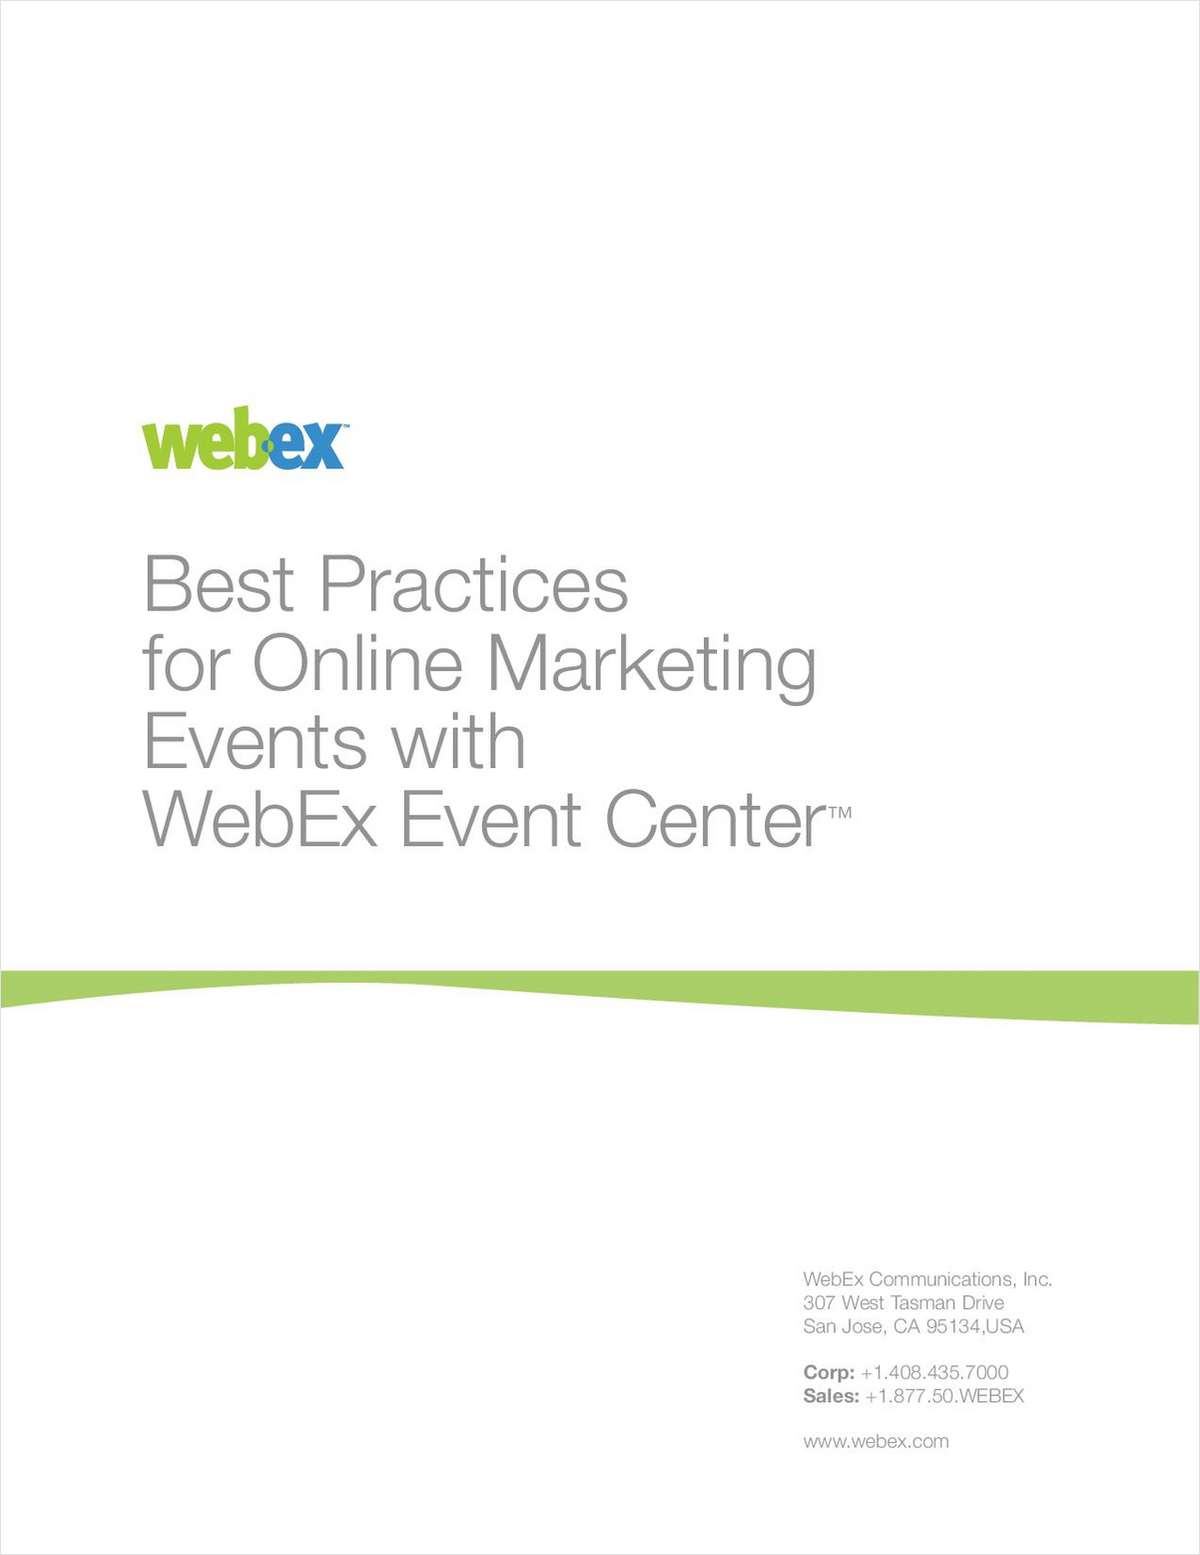 Best Practices for Online Marketing Events with WebEx Events Center